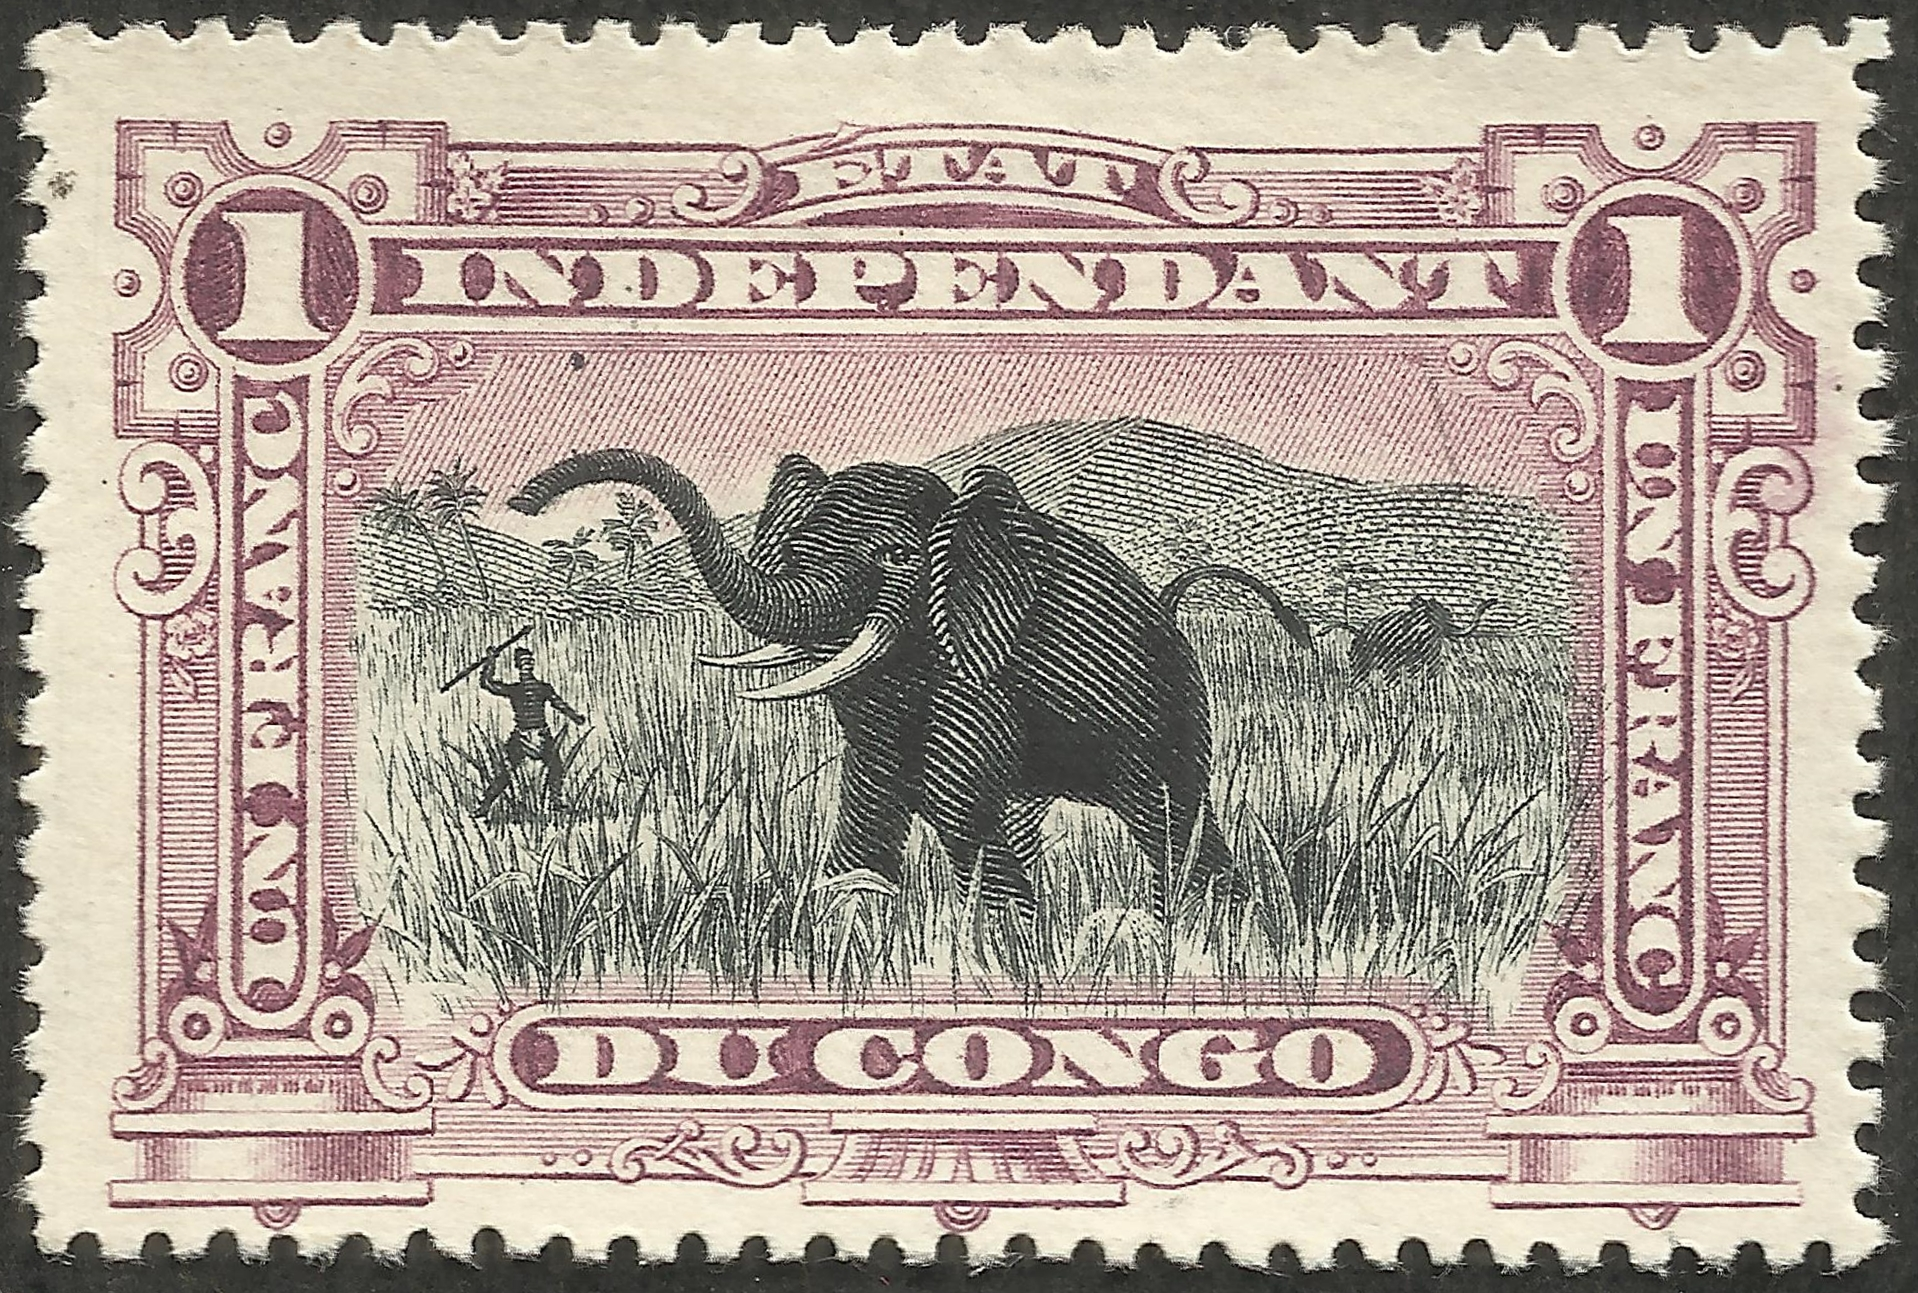 Congo Free State 24 1894 A Stamp A Day